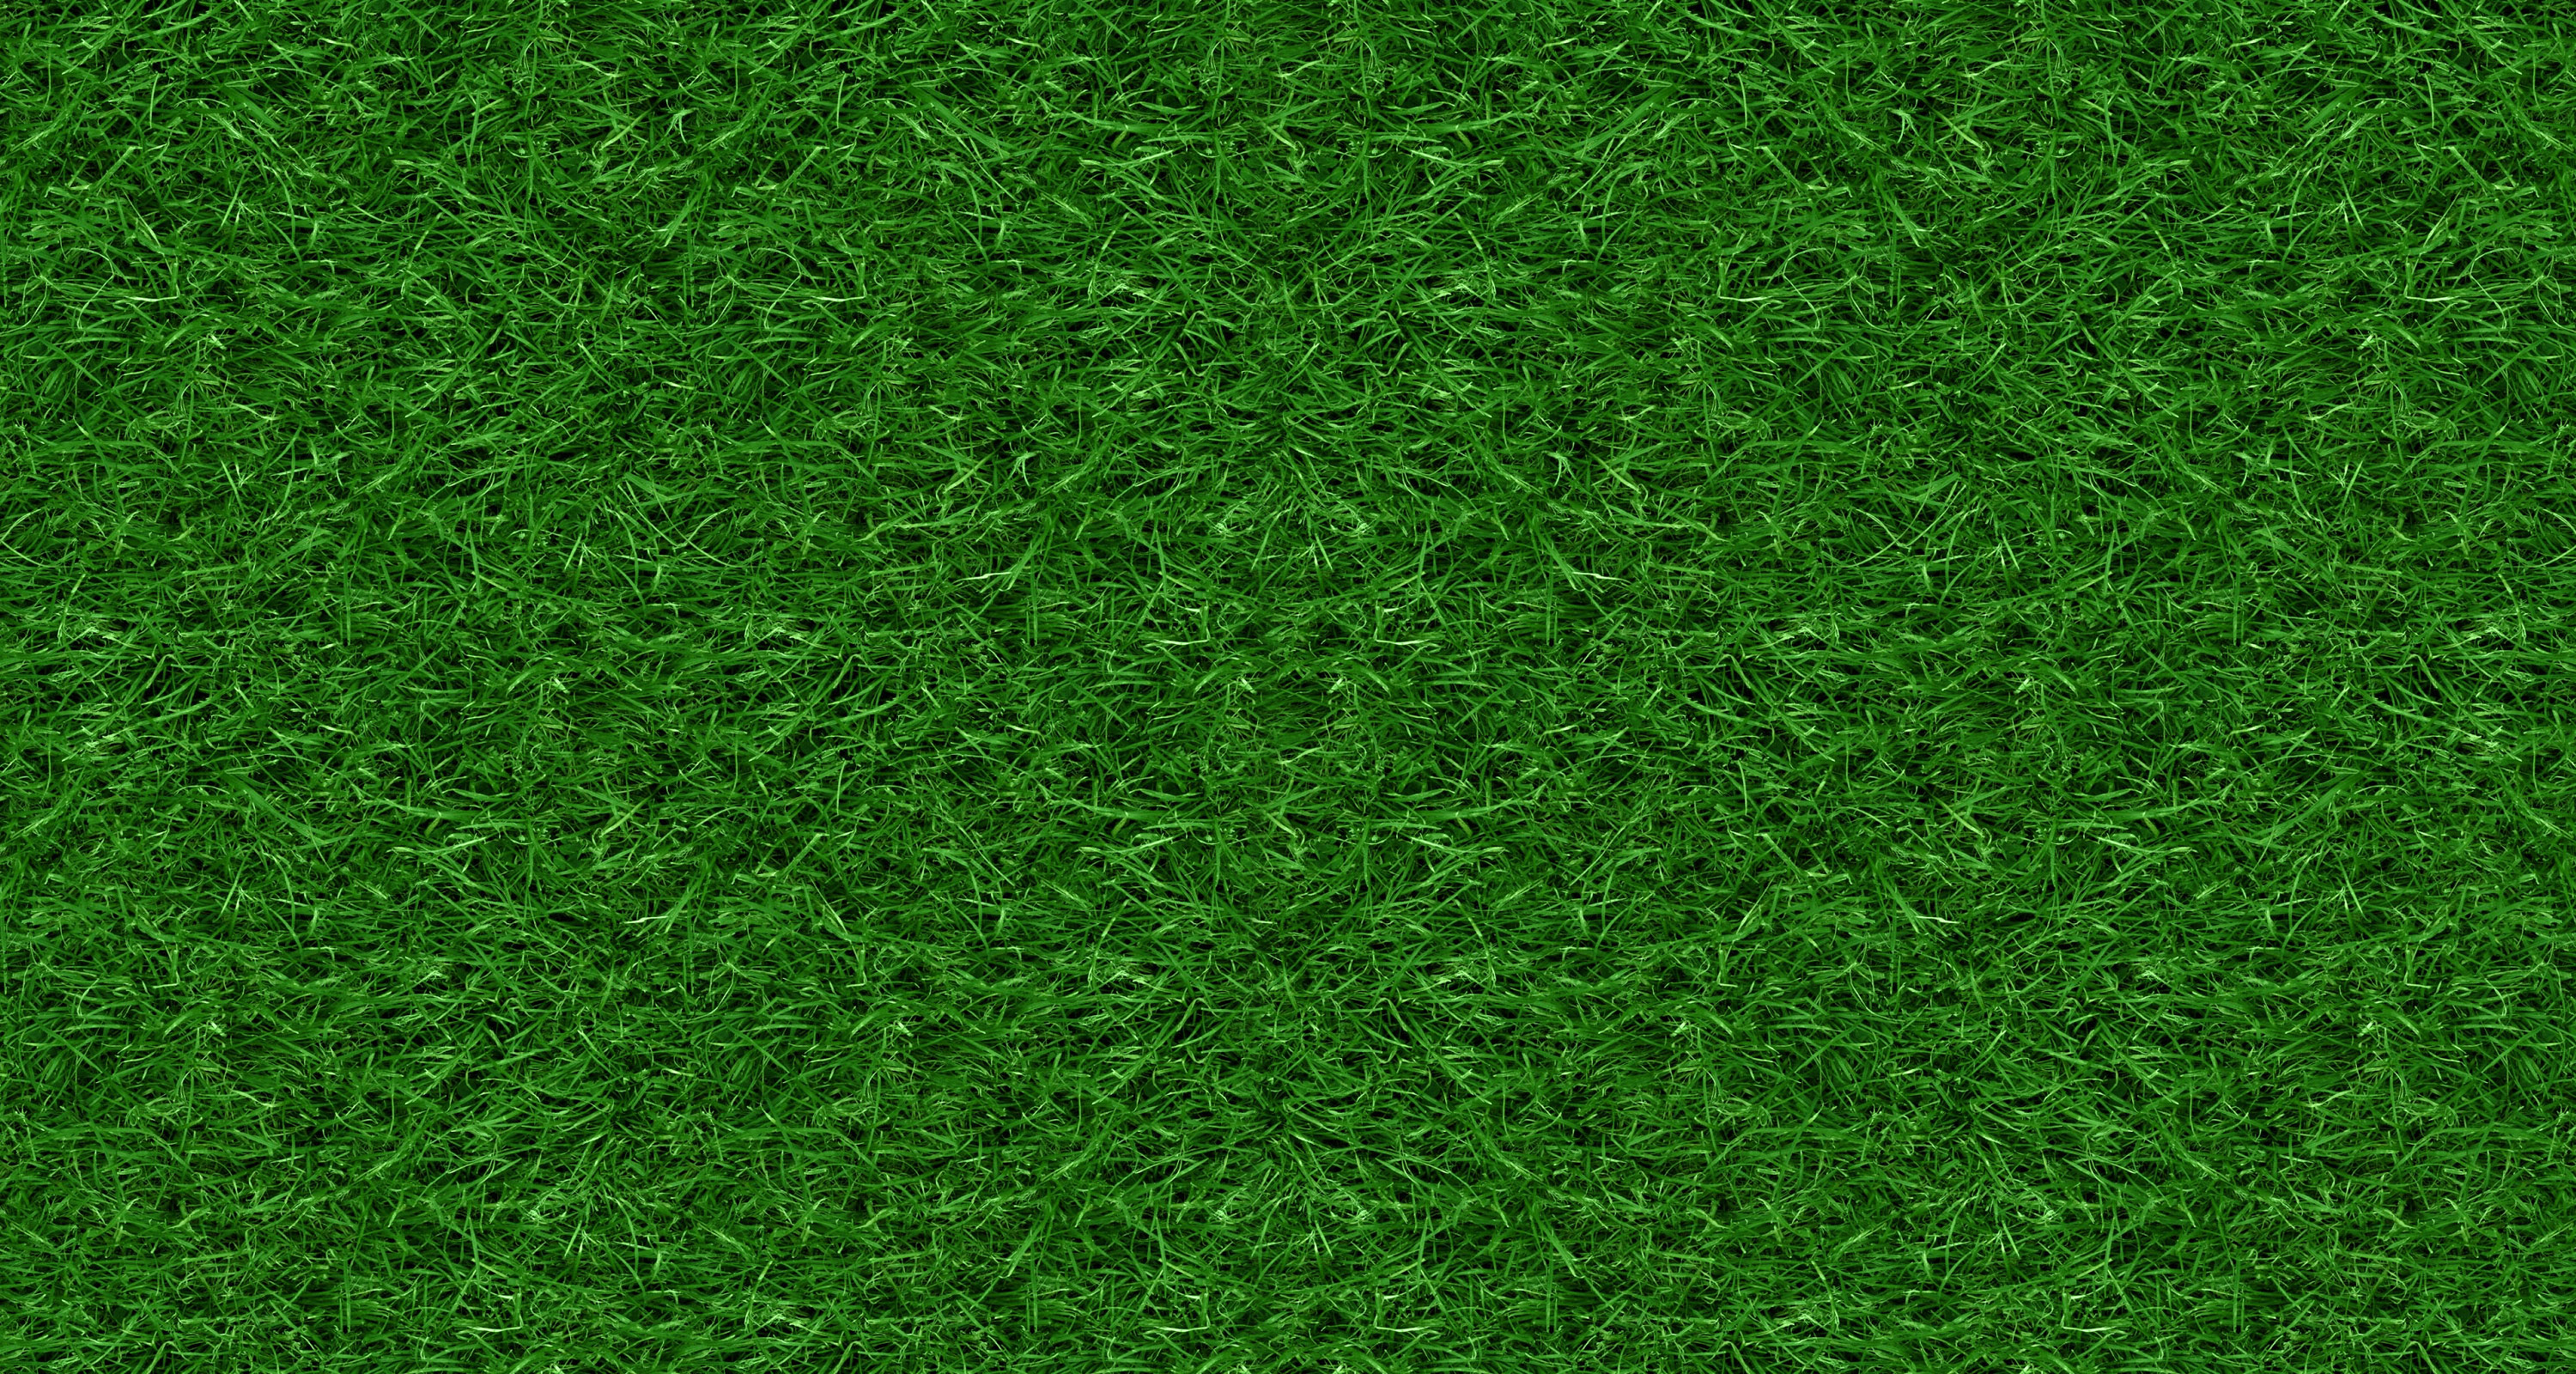 Green Ground Texture